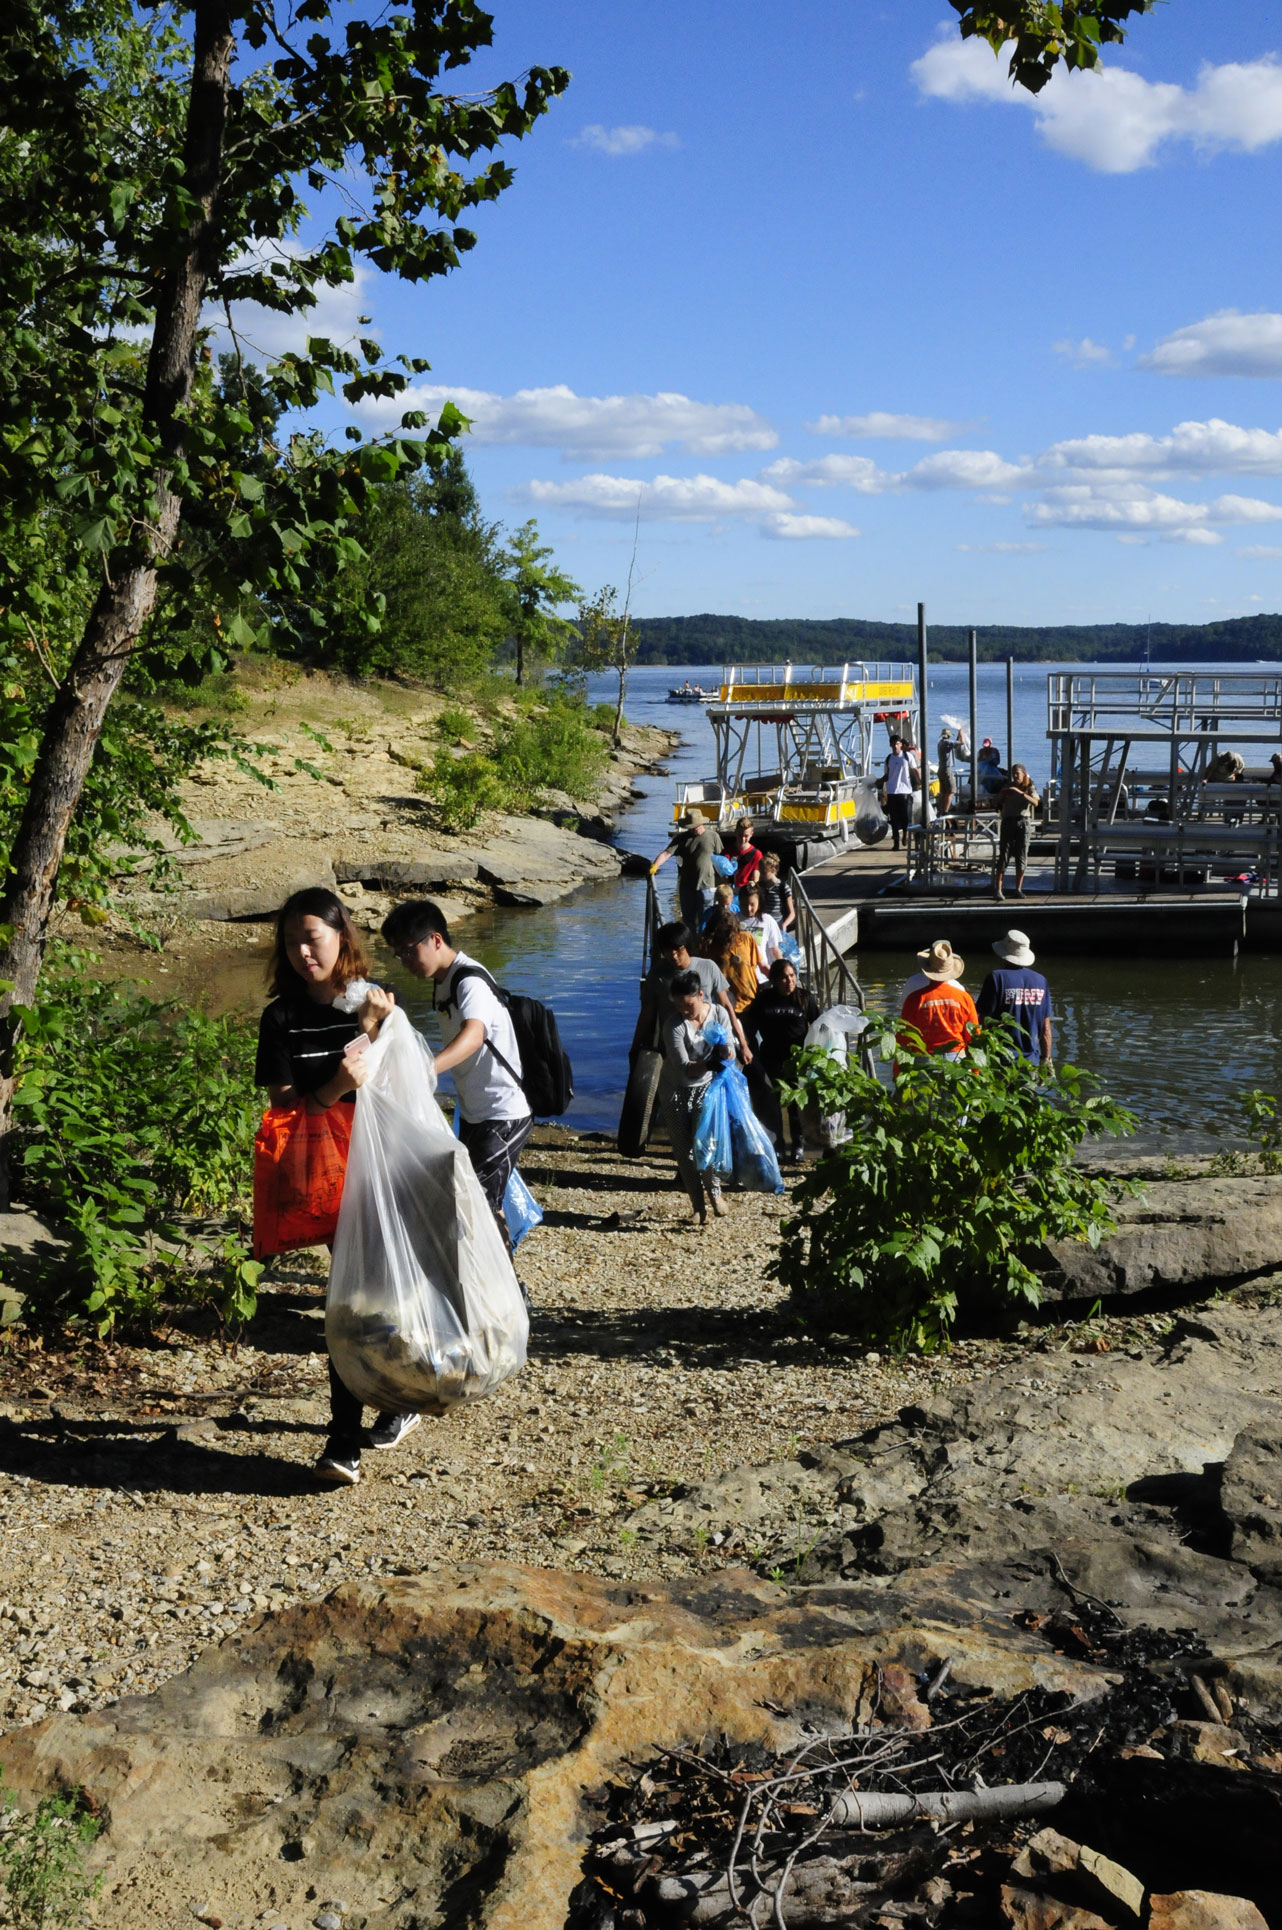 A photo of Volunteers disembarking from boat to remove trash